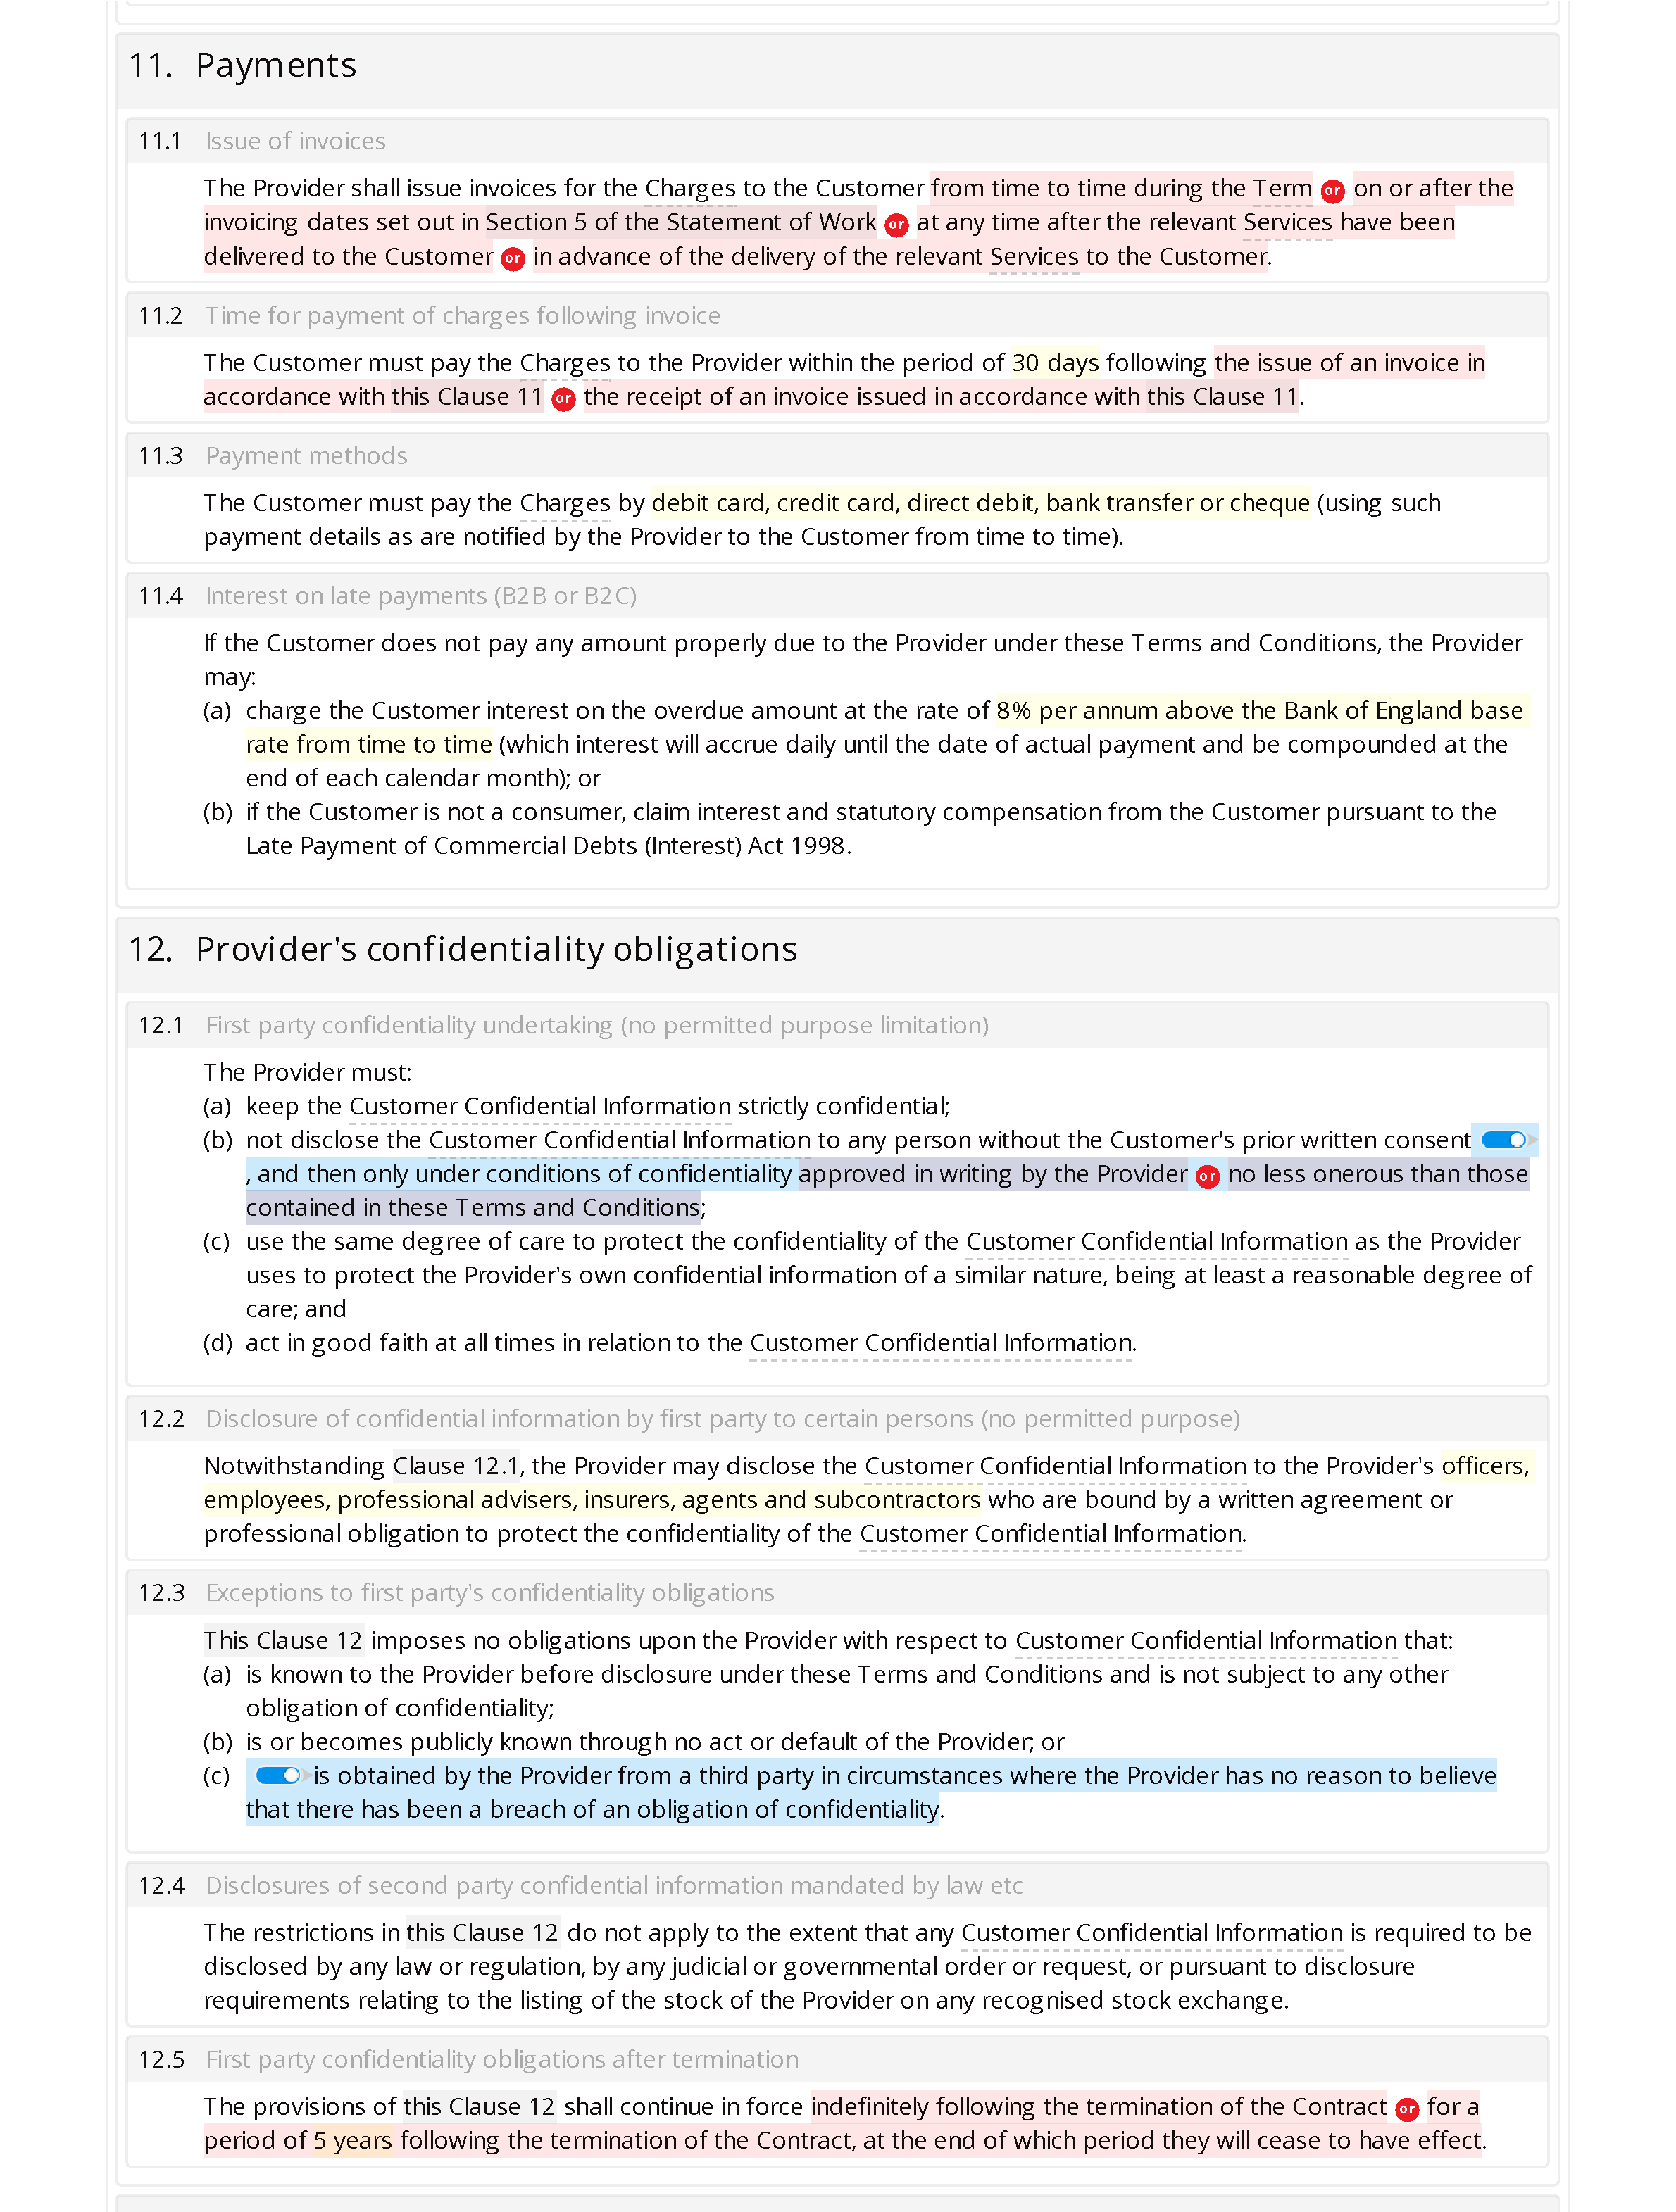 Window cleaning terms and conditions document editor preview